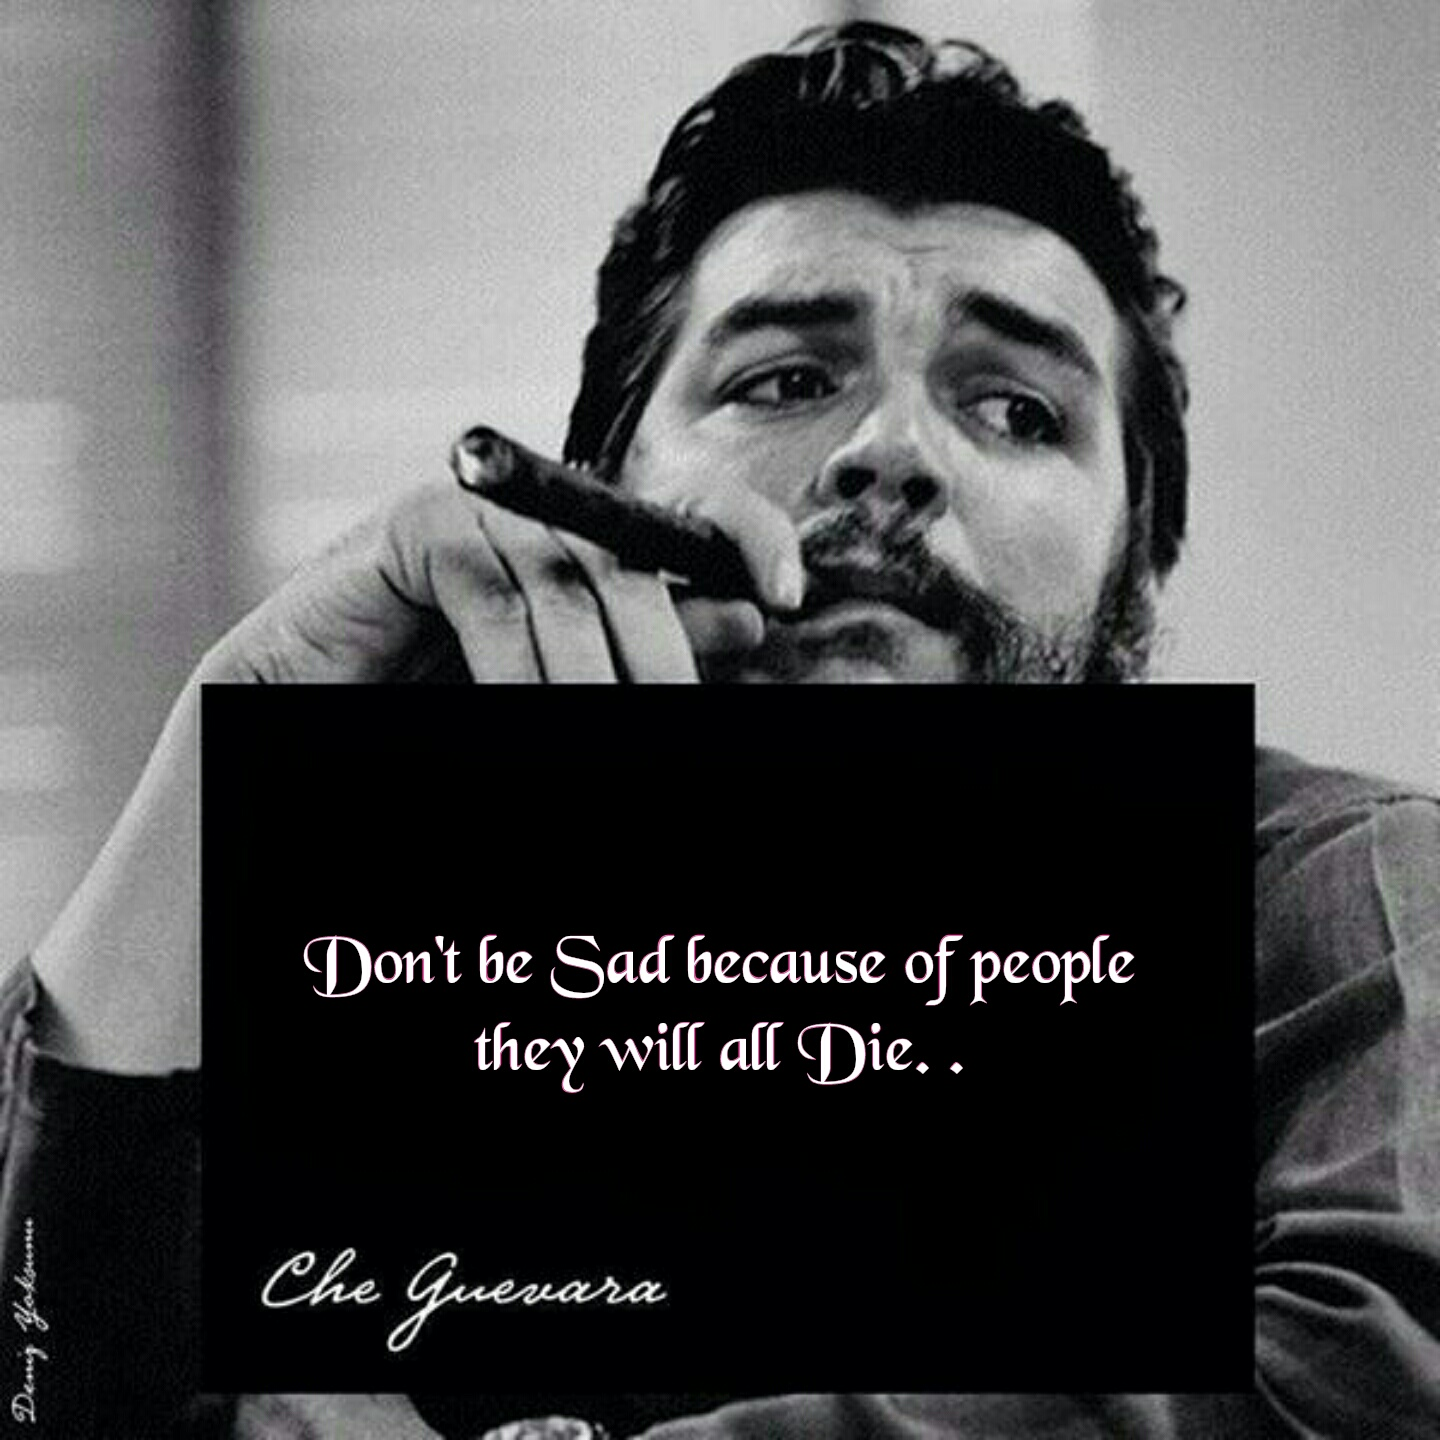 Che Guevara Quotes Tumblr By Inamson1 On Deviantart